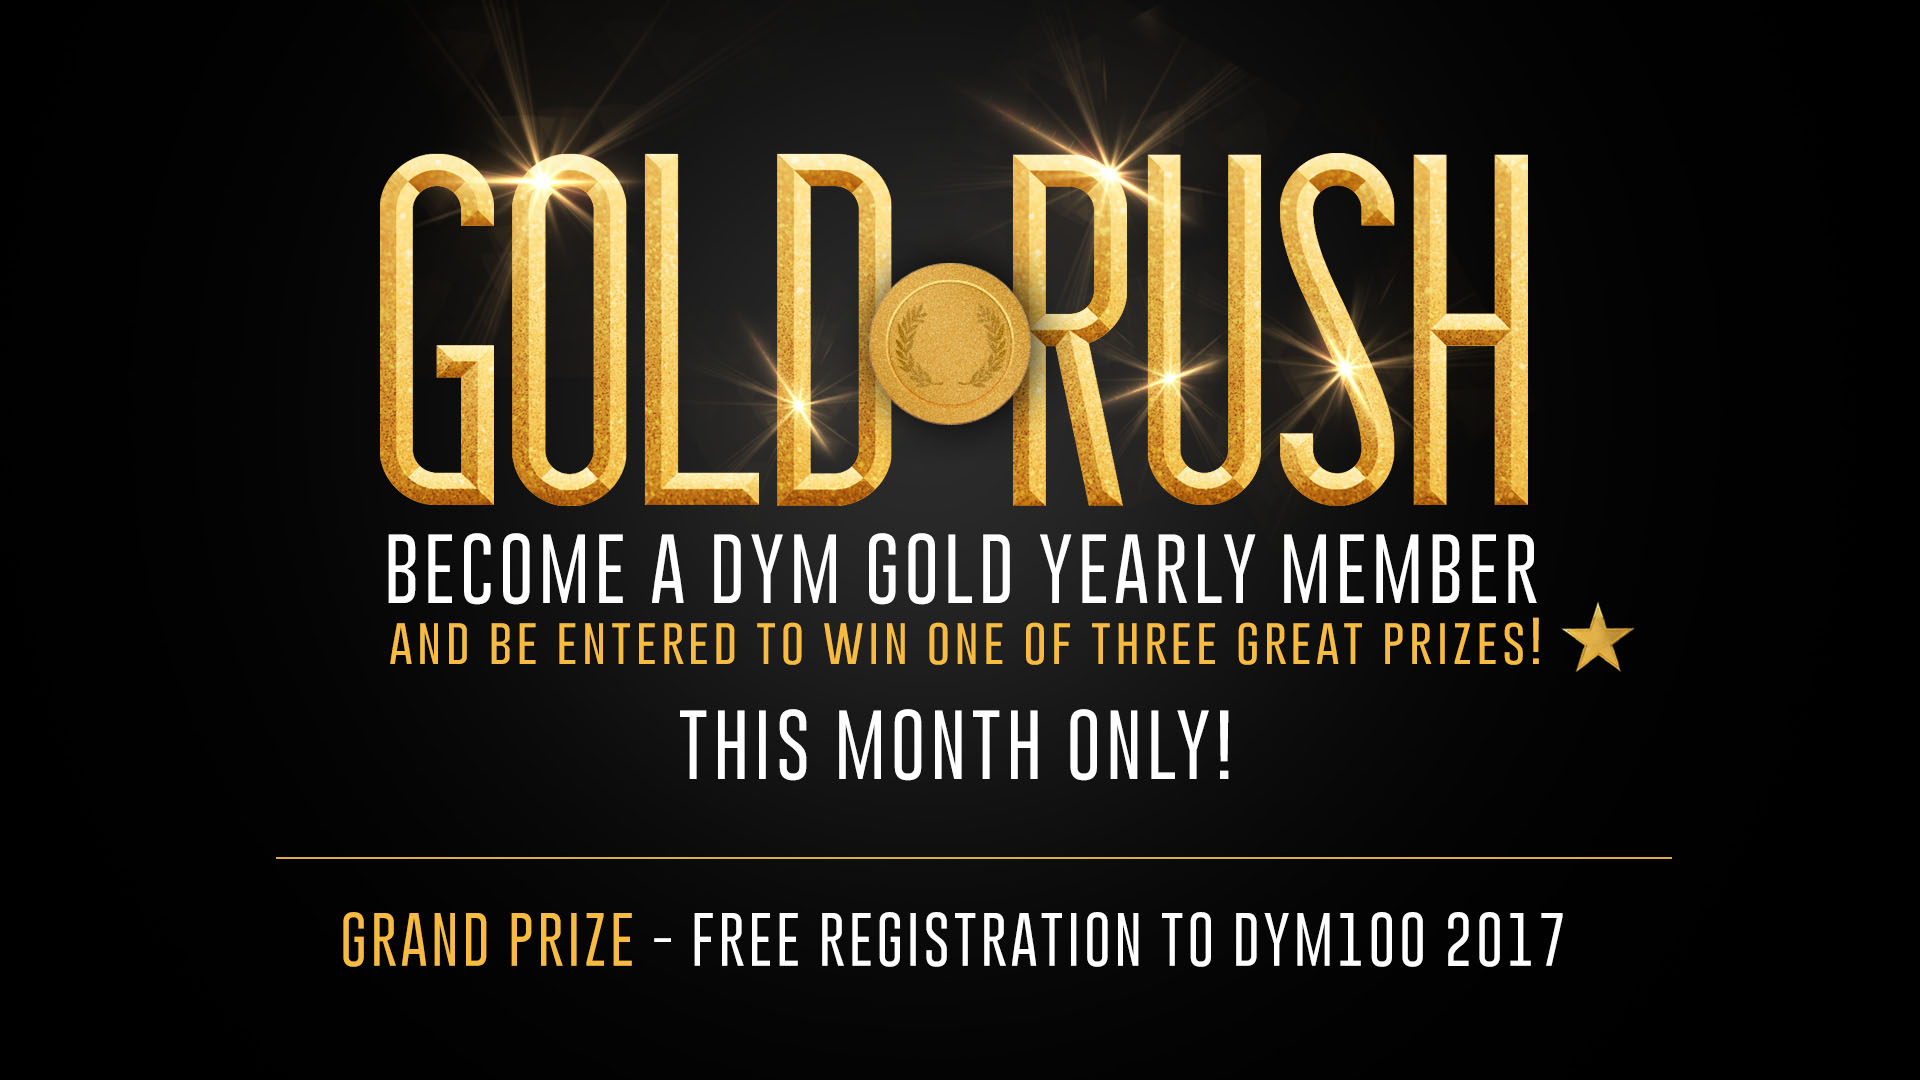 GoldRushMembership.jpg